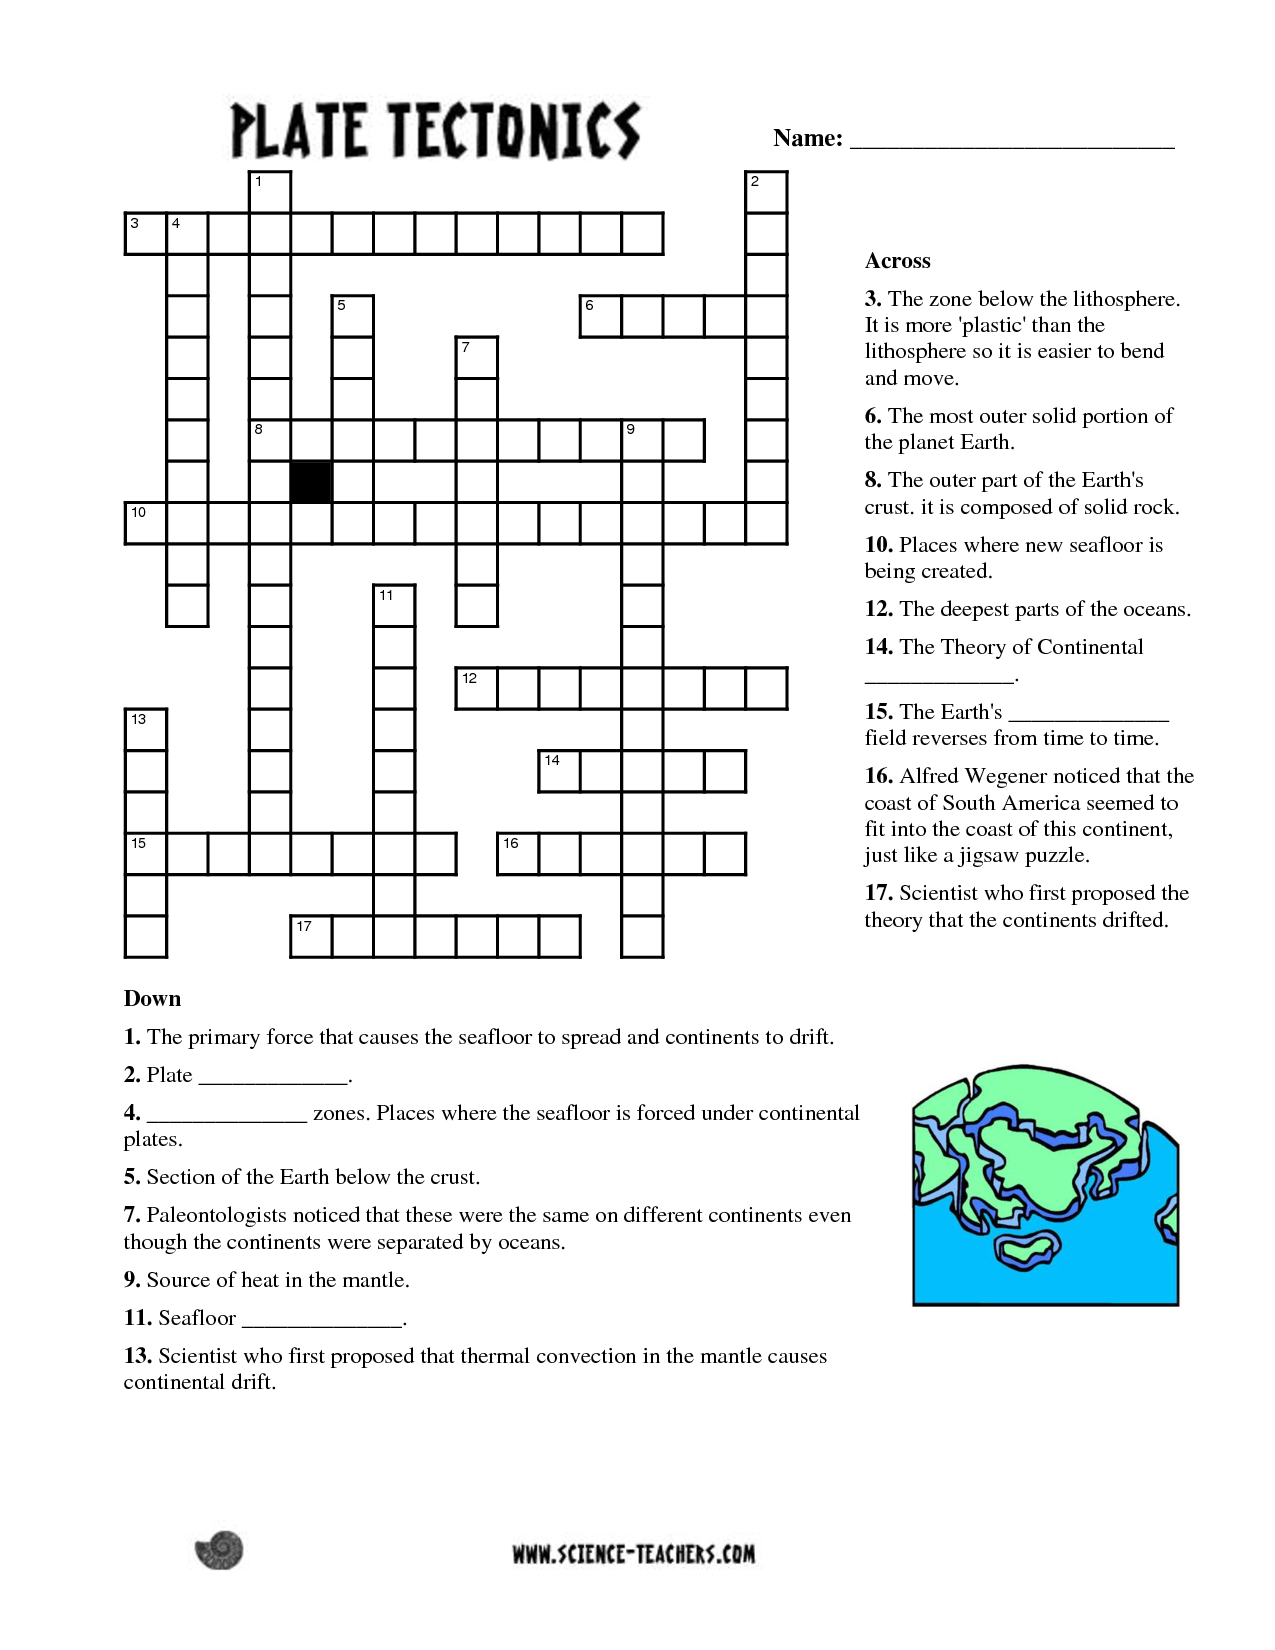 image regarding Fun Crossword Puzzles Printable known as Science Crossword Puzzles Printable With Remedies Printable